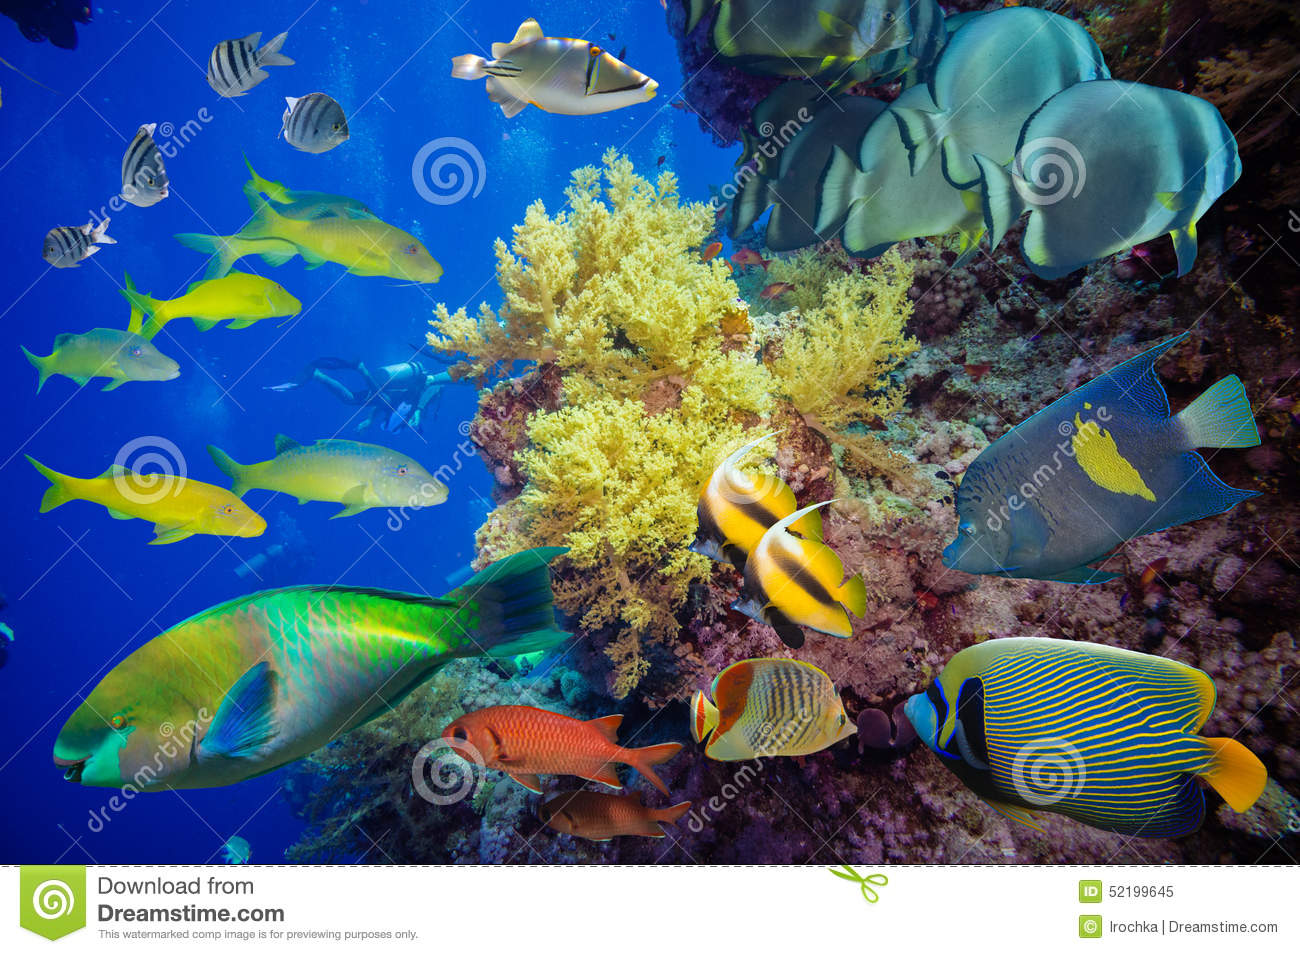 Tropical fish and coral reef stock image image of marine for Reef tropical fish